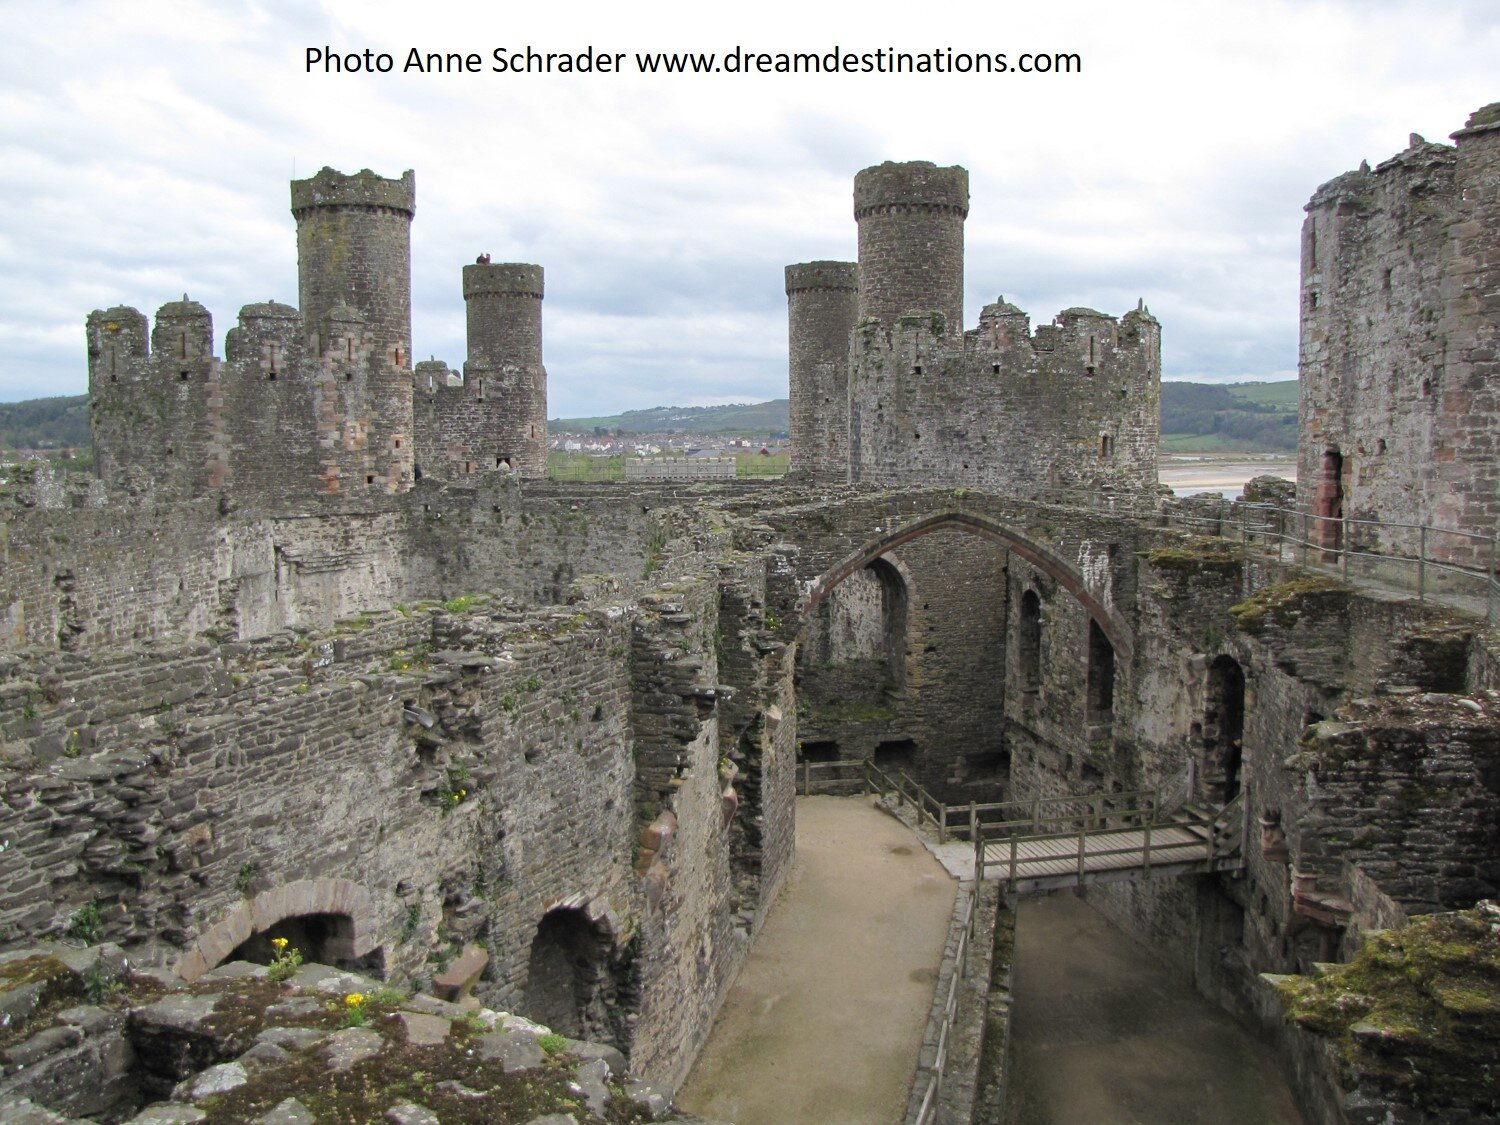 The interior of Conwy Castle